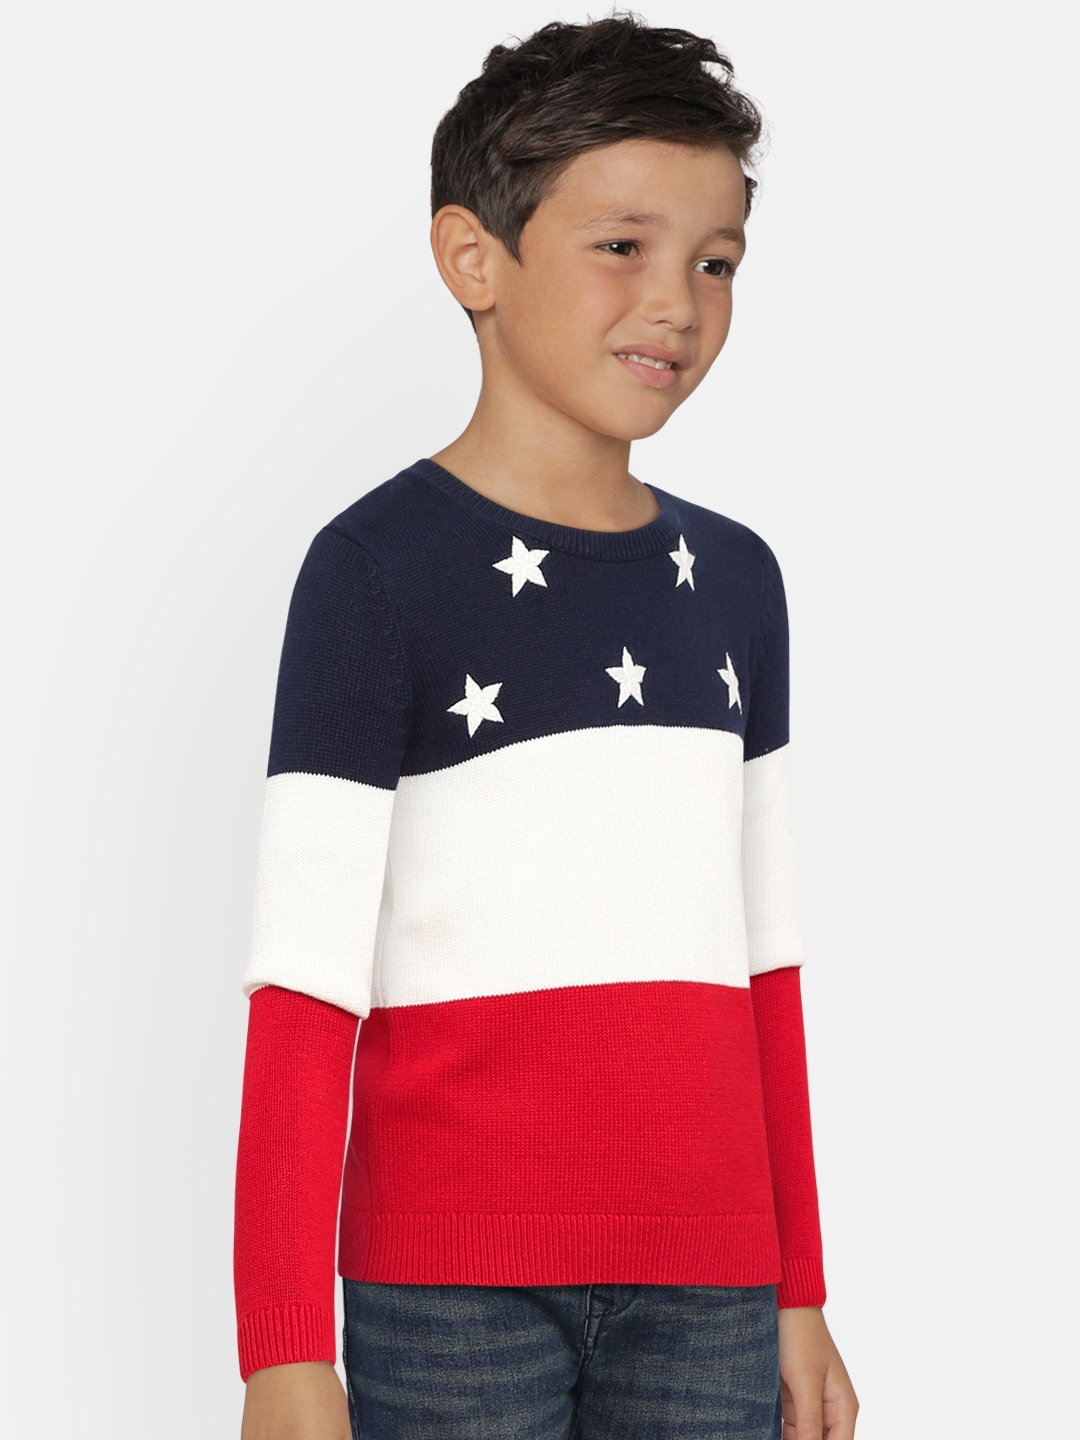 9a0b650f6dd Buy Tommy Hilfiger Girls Navy Blue   White Self Design Pullover ...